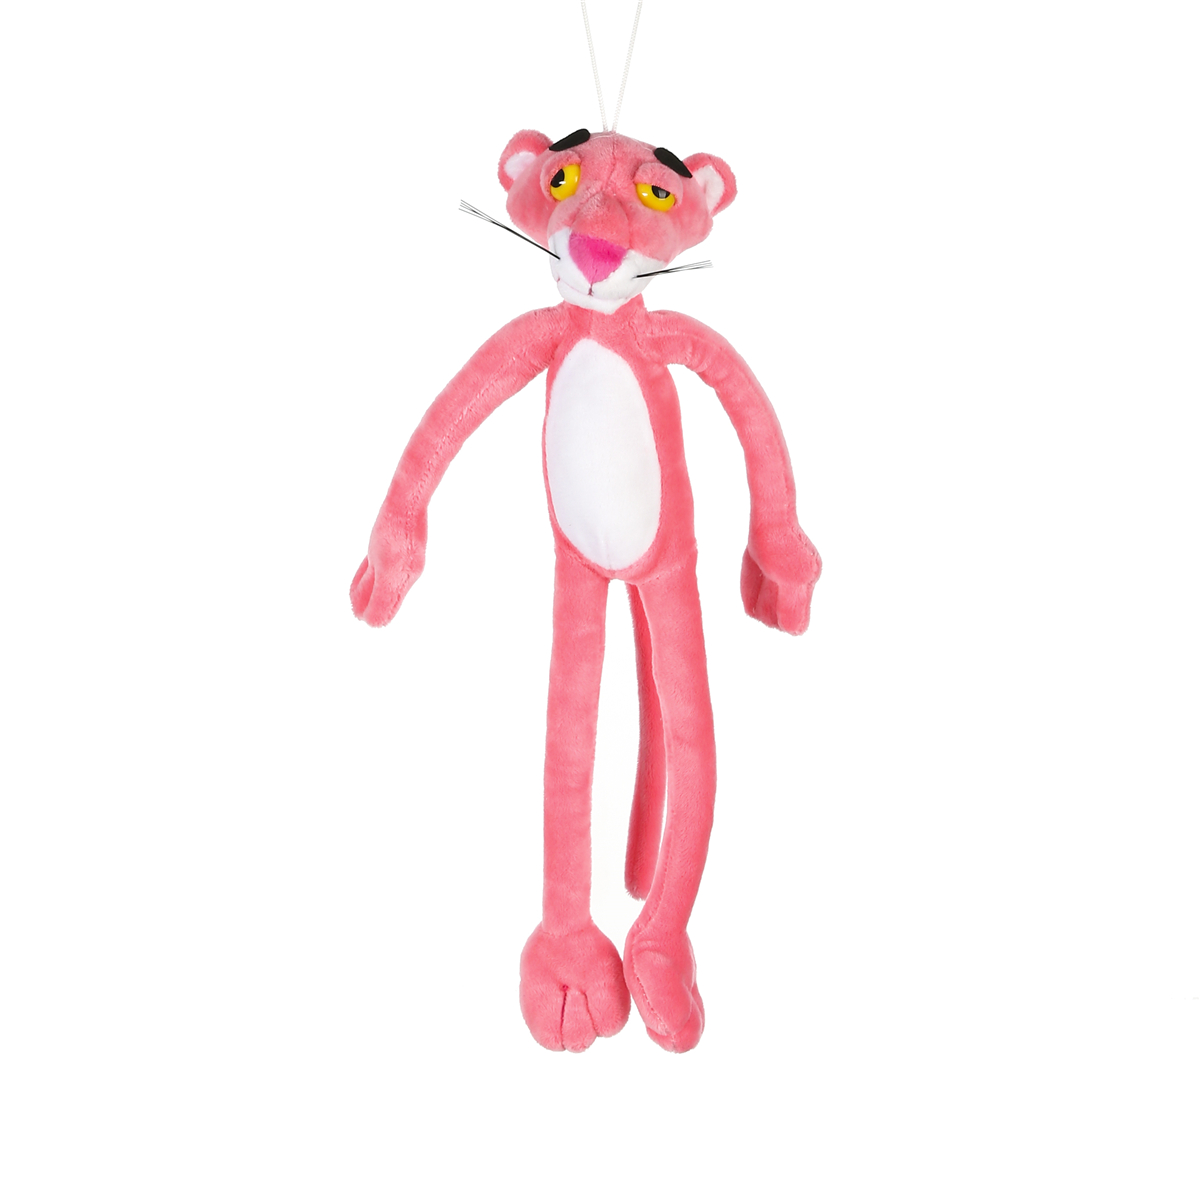 Pudcoco New Cute Baby Pink Panther Stuffed Plush Toy Doll Kids 38CM15'' Lovely Naughty Soft Plaything Gift